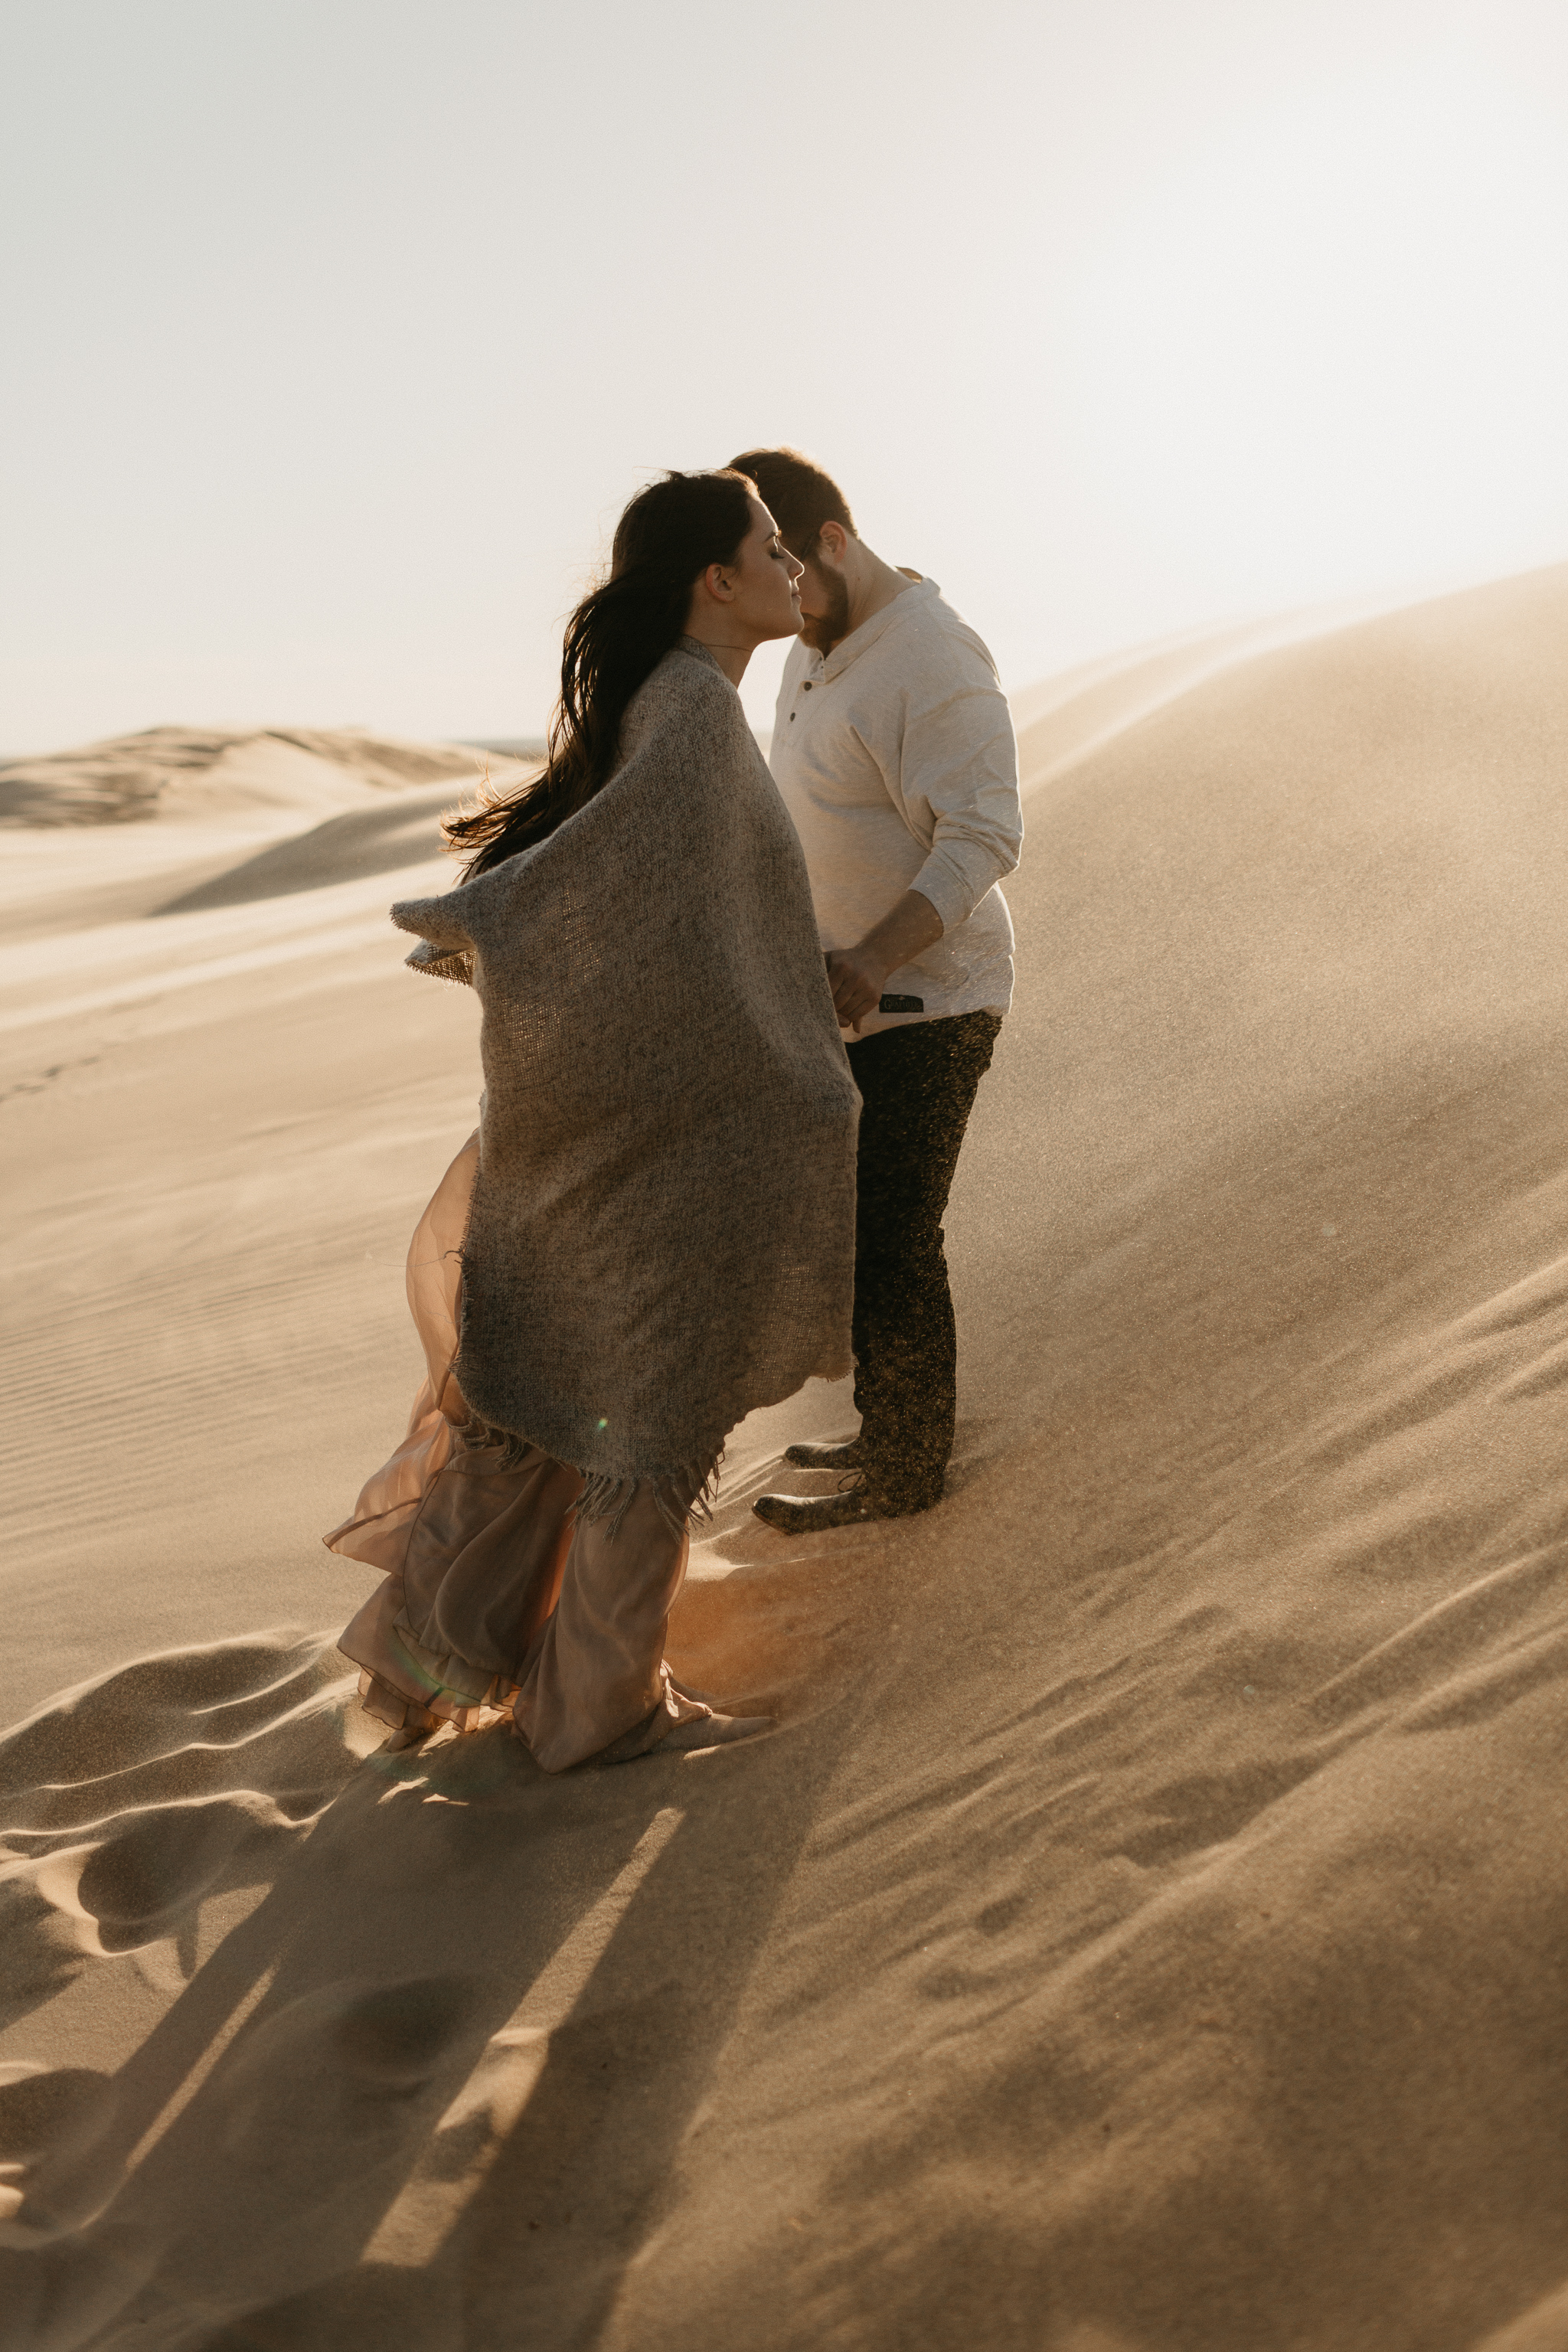 eastlyn-bright-silver-lake-sand-dunes-michigan-wedding-engagement-photographer-73.jpg